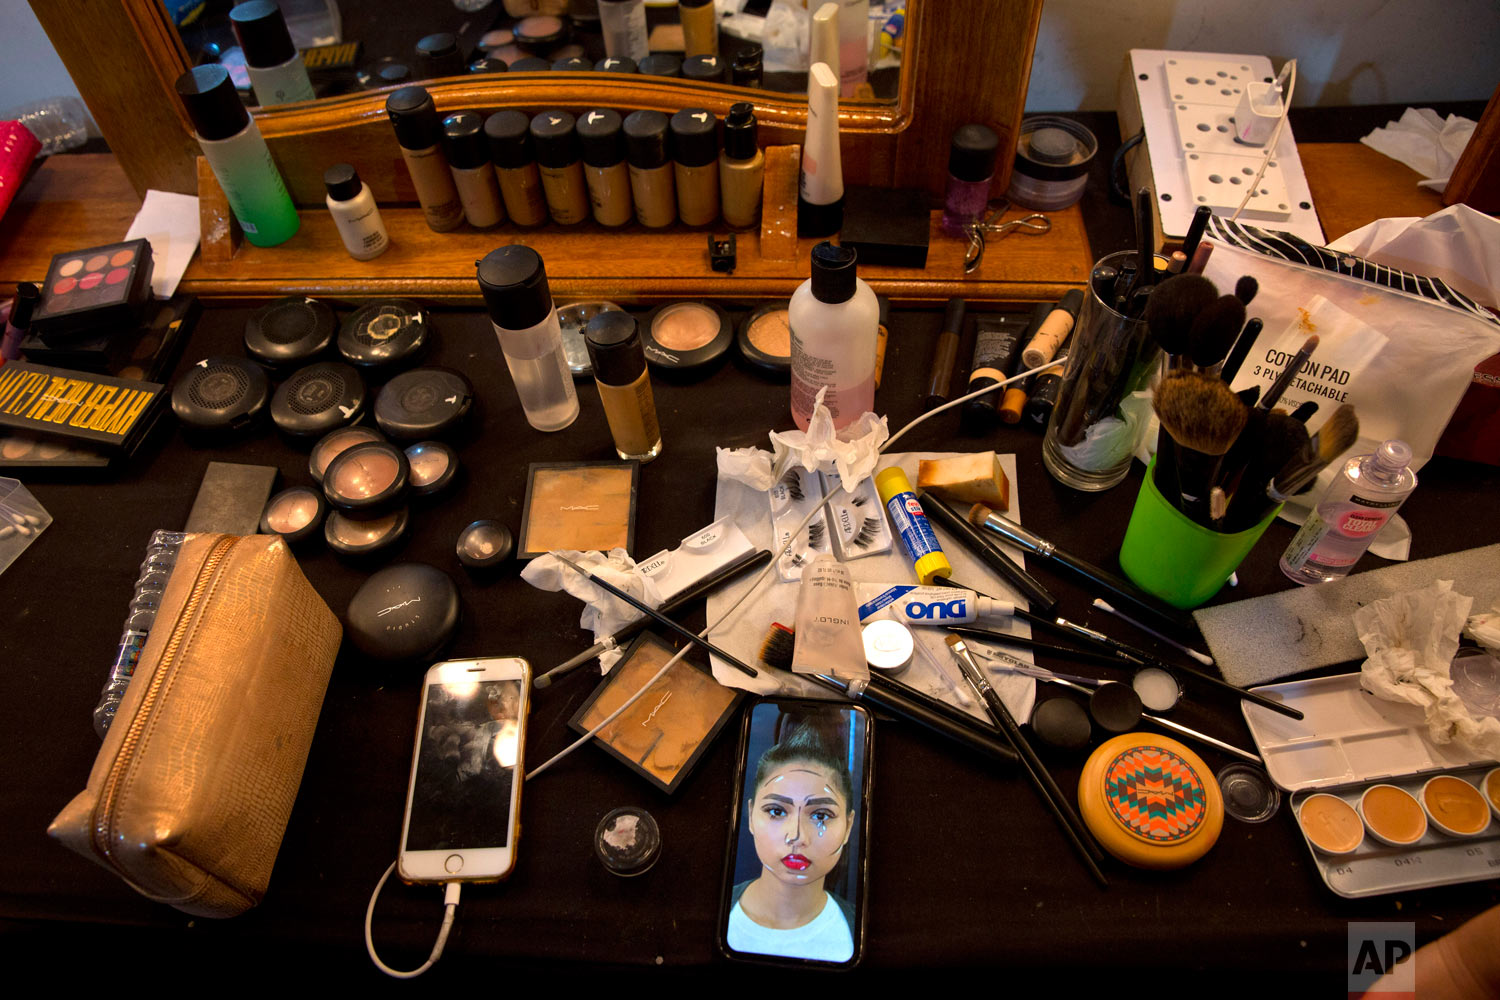 A photograph of an Indian model is seen on the mobile phone of a makeup artist at the main makeup room at the Lotus Makeup India Fashion Week, Thursday, March 14, 2019, in New Delhi, India. (AP Photo/Manish Swarup)